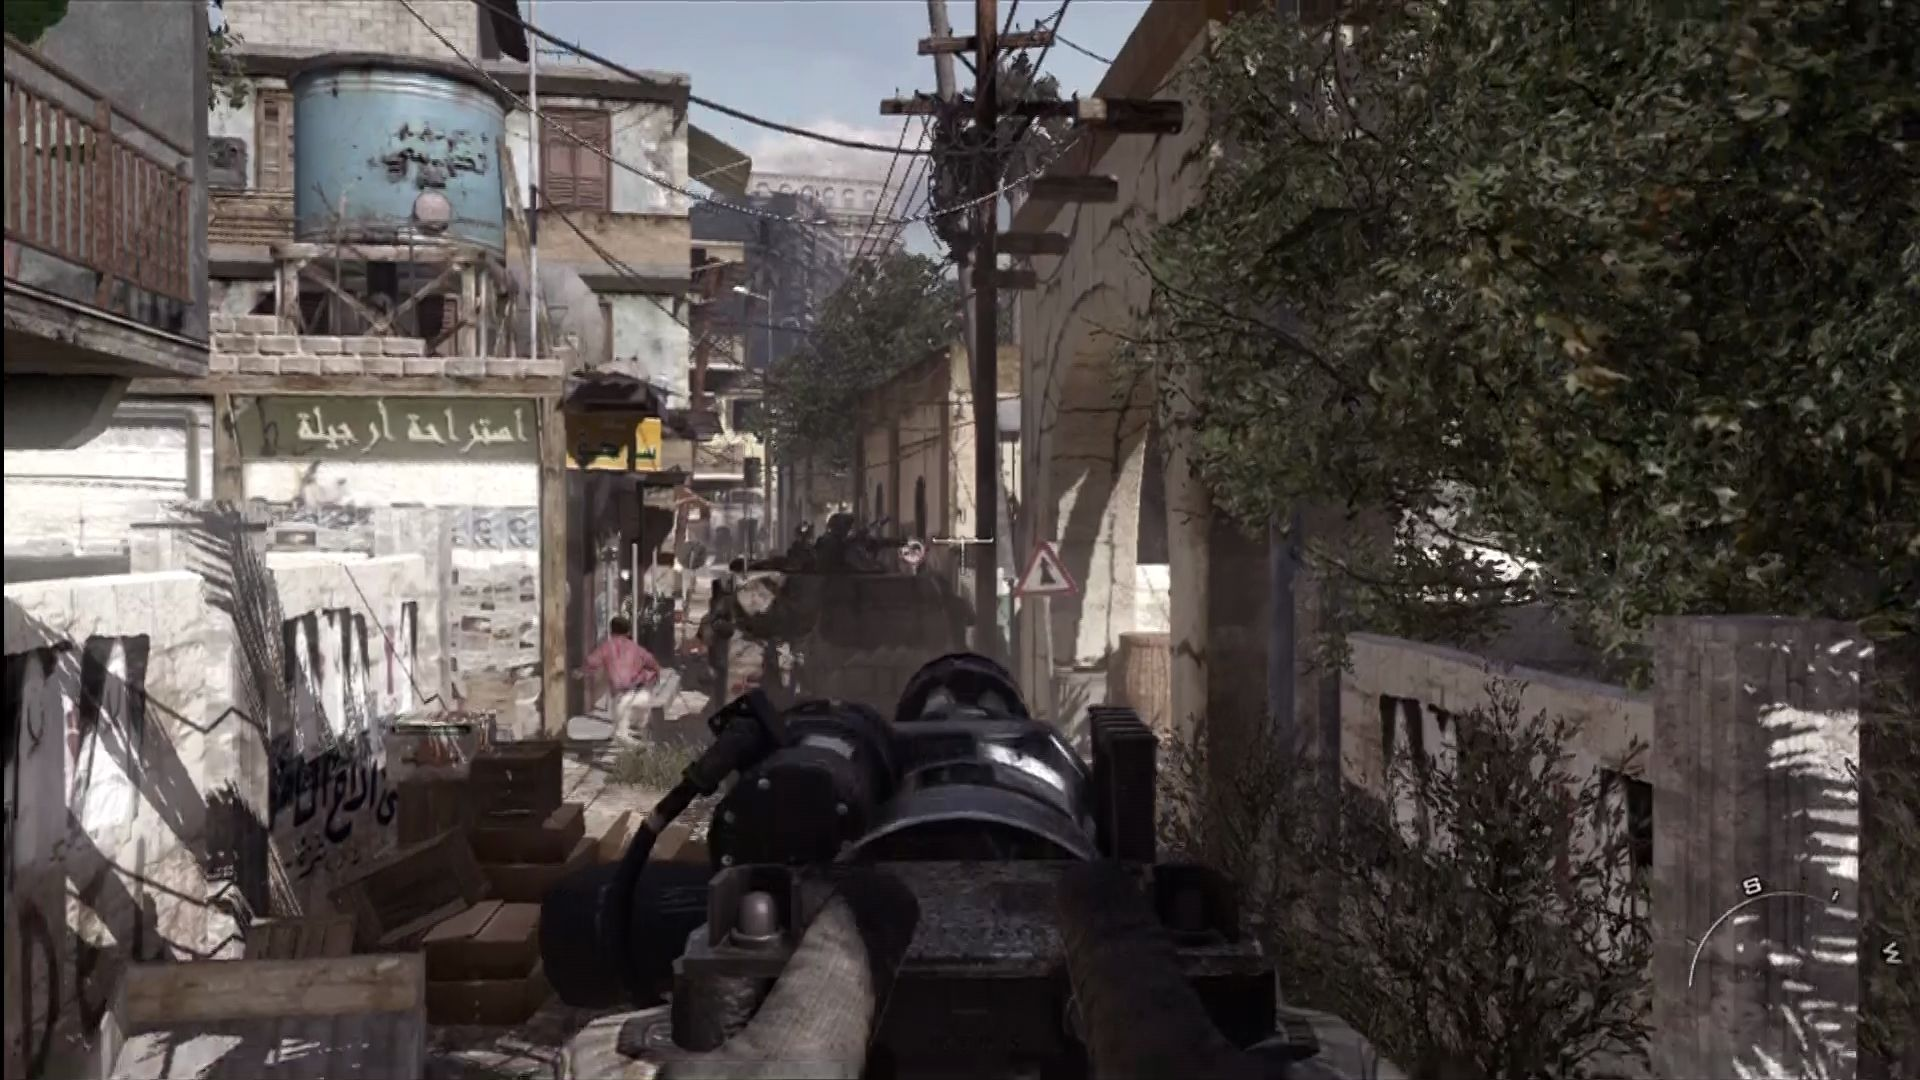 Call of Duty: Modern Warfare 2 Xbox 360 Convoy heads into enemy territory.